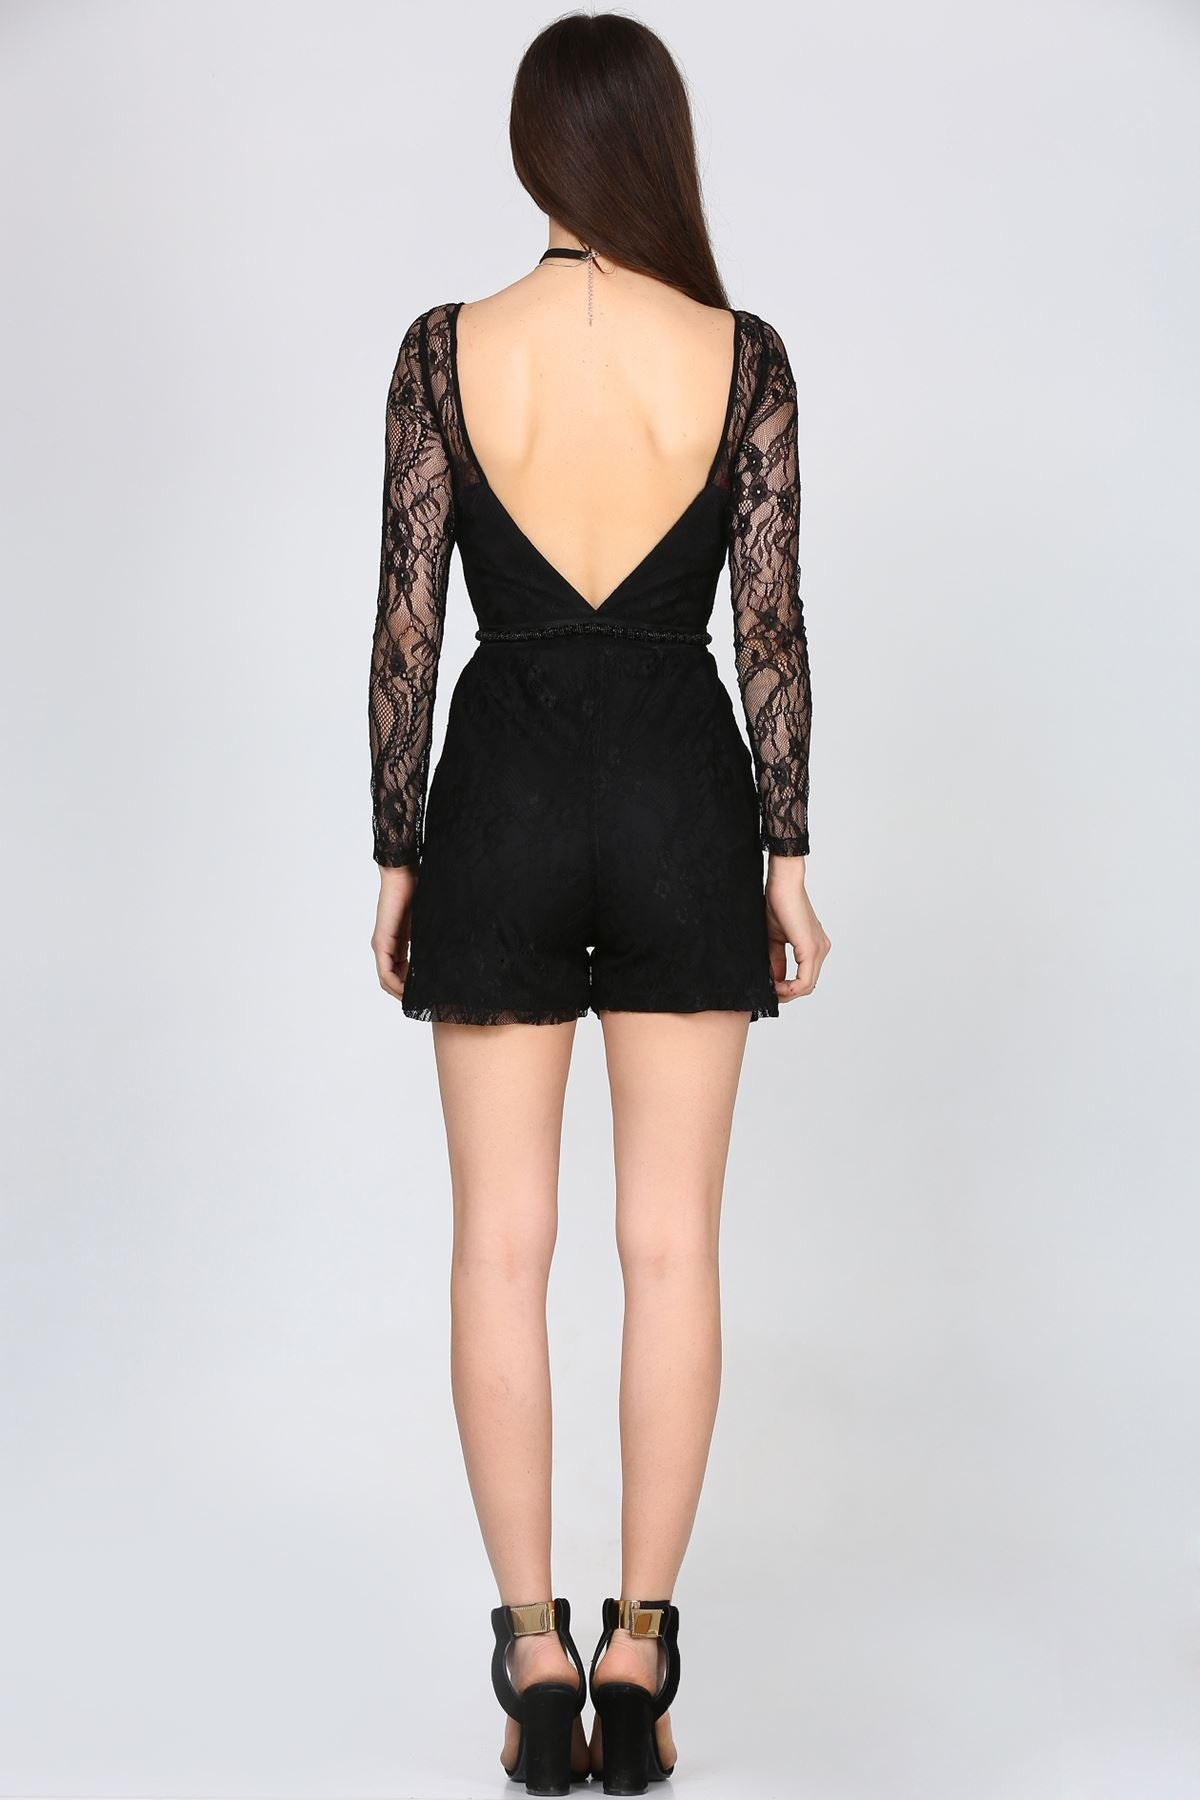 Back Decolletage Laced Black Overalls - THE UNIQUE FIT